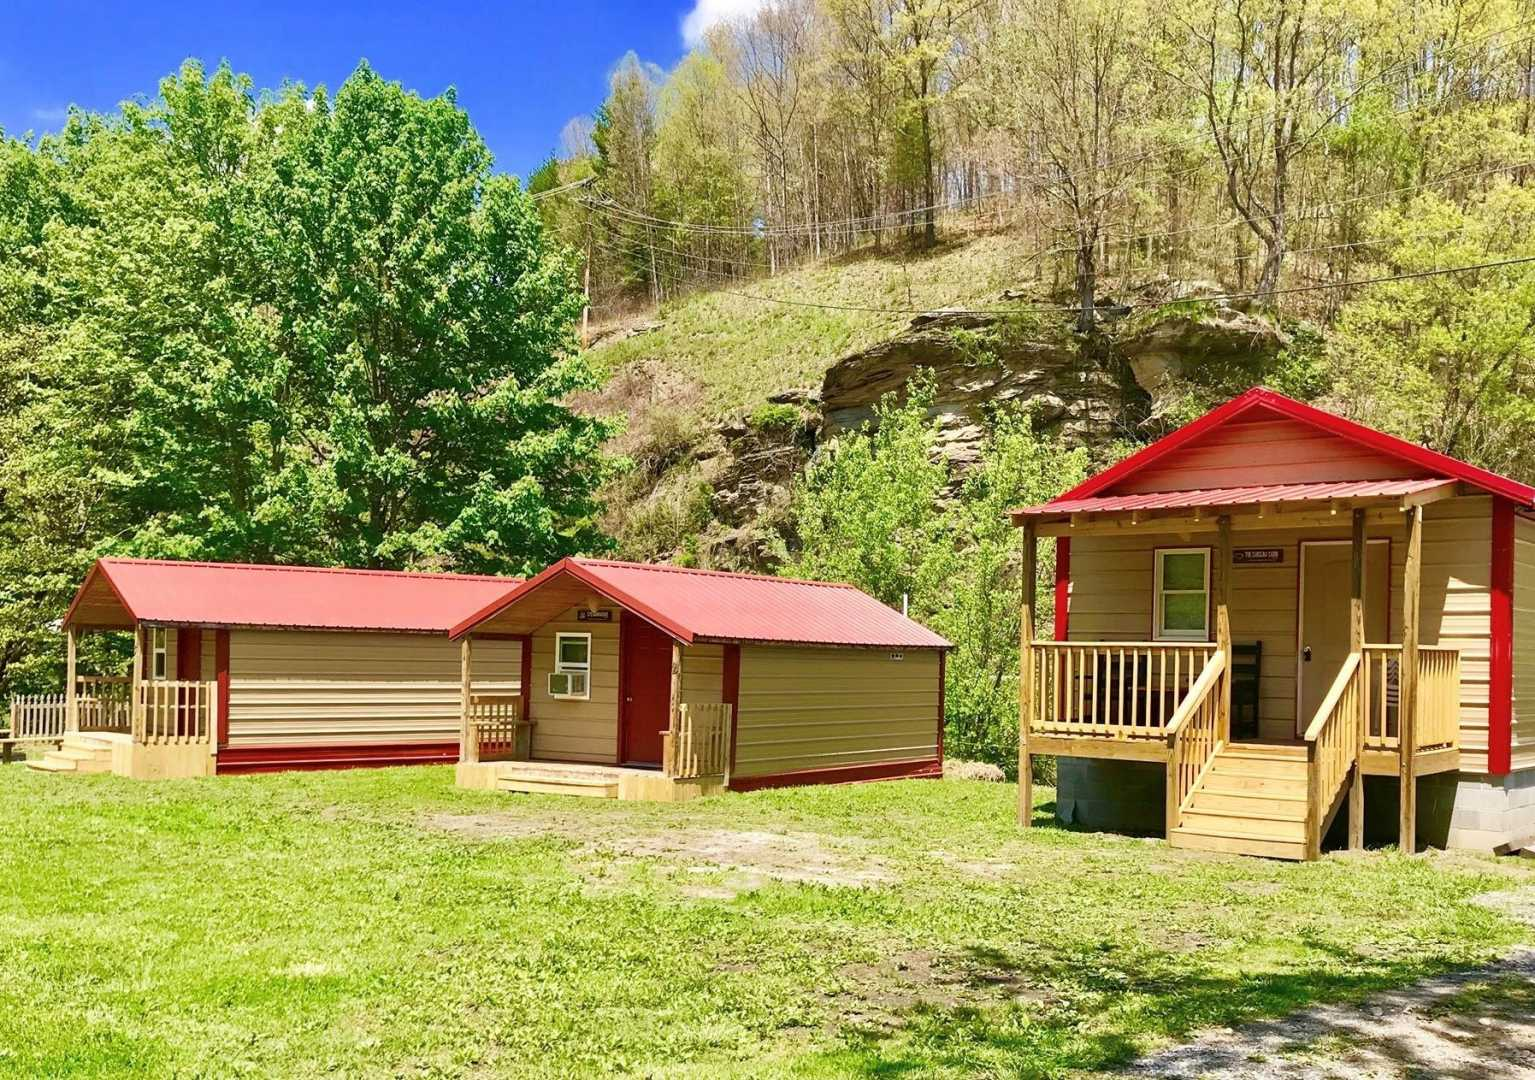 Cabins, Camping & RV Archives - Hatfield-McCoy Trails